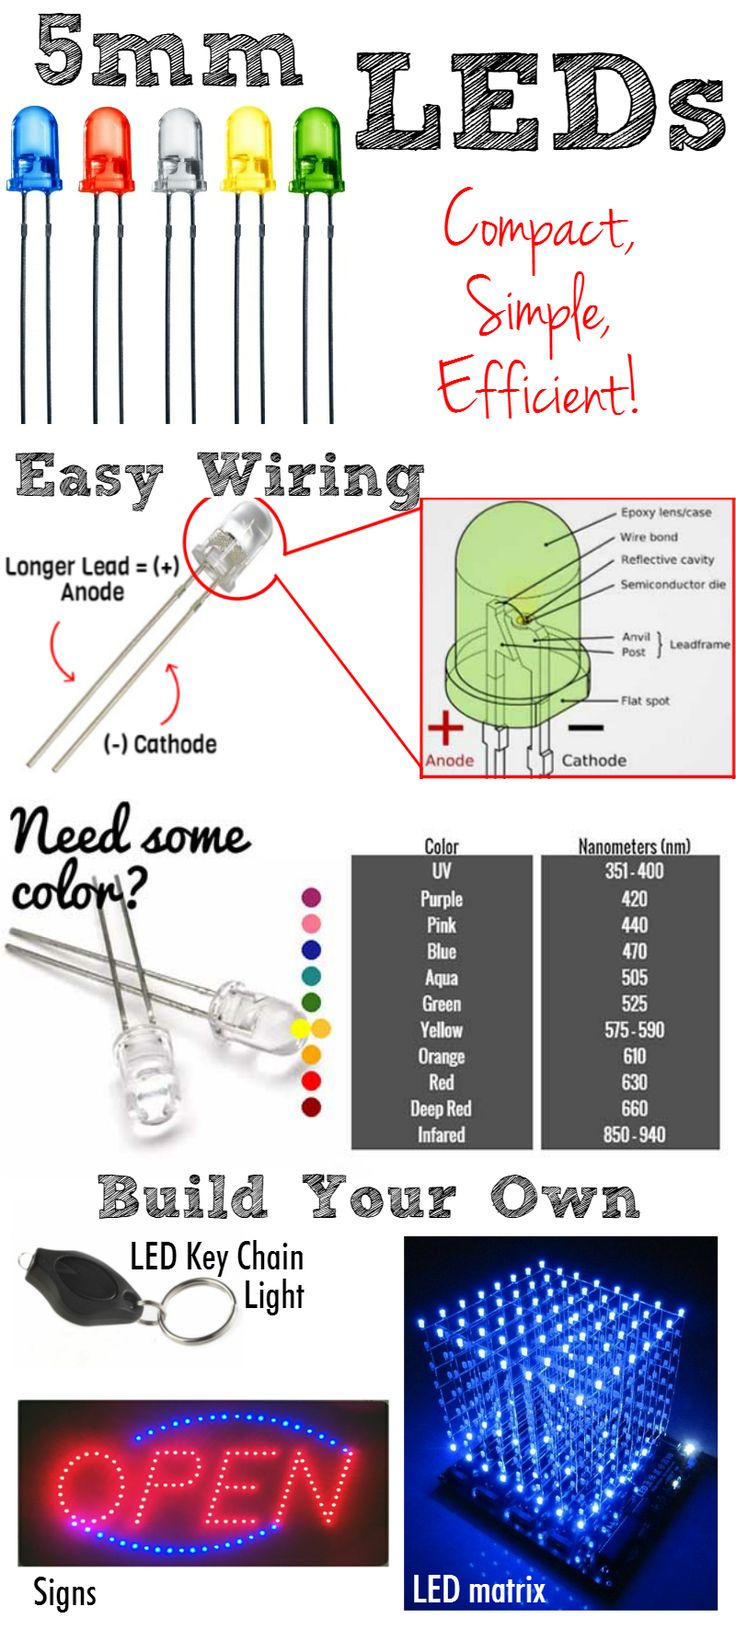 How does a 5mm LED work? The trick behind powering, finding the right resistor size, and building your own products that really light up!